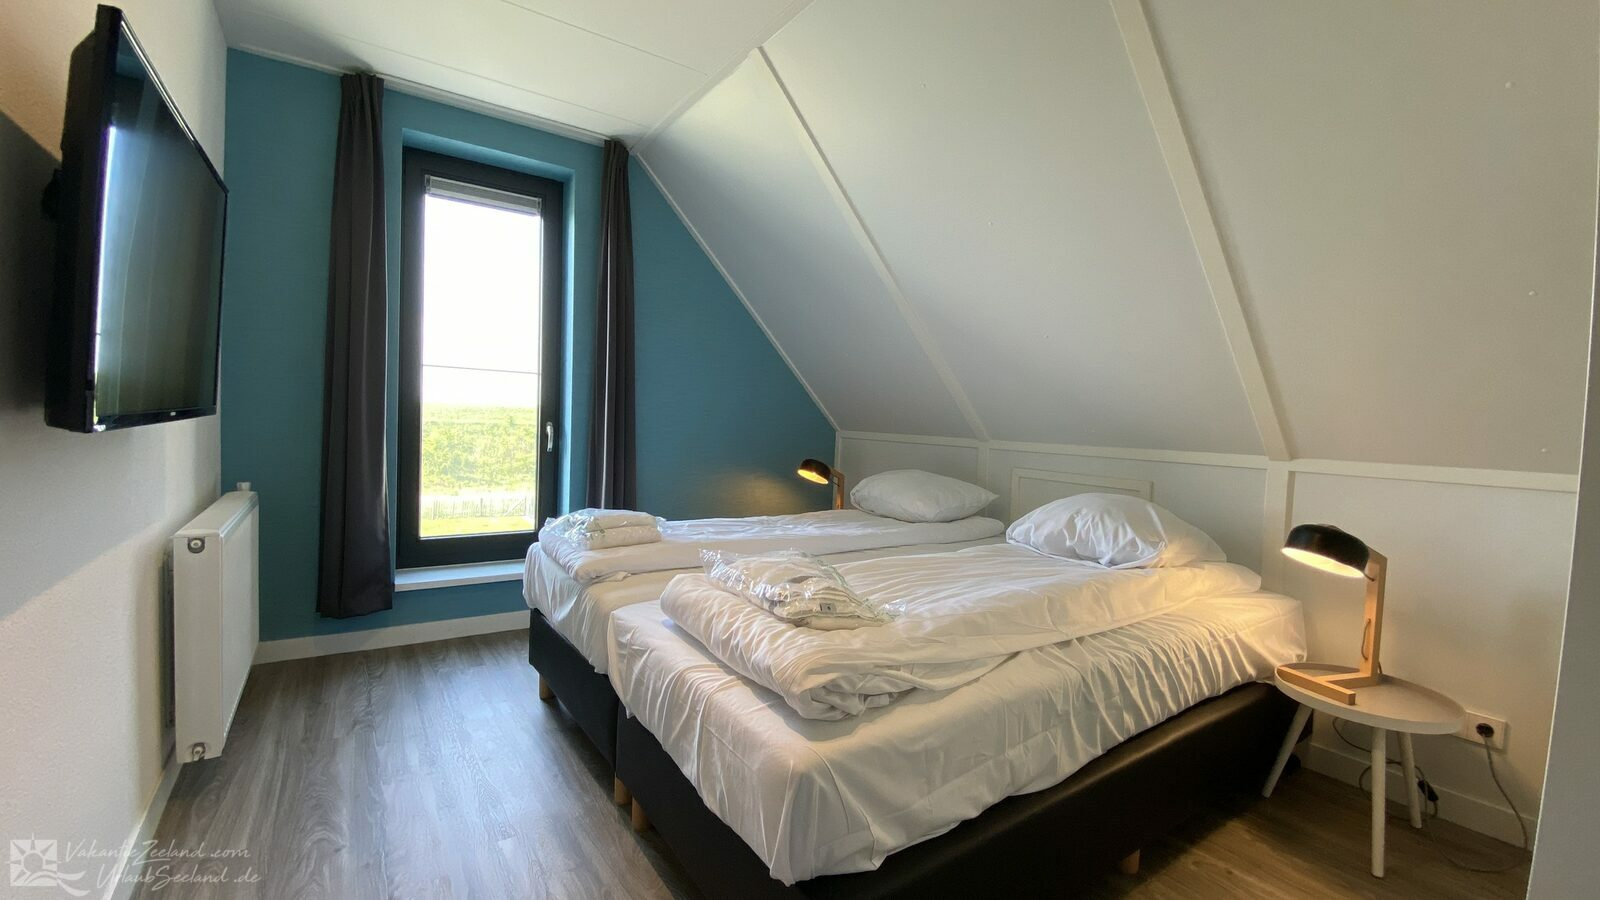 VZ750 Wellness group accommodation Tholen